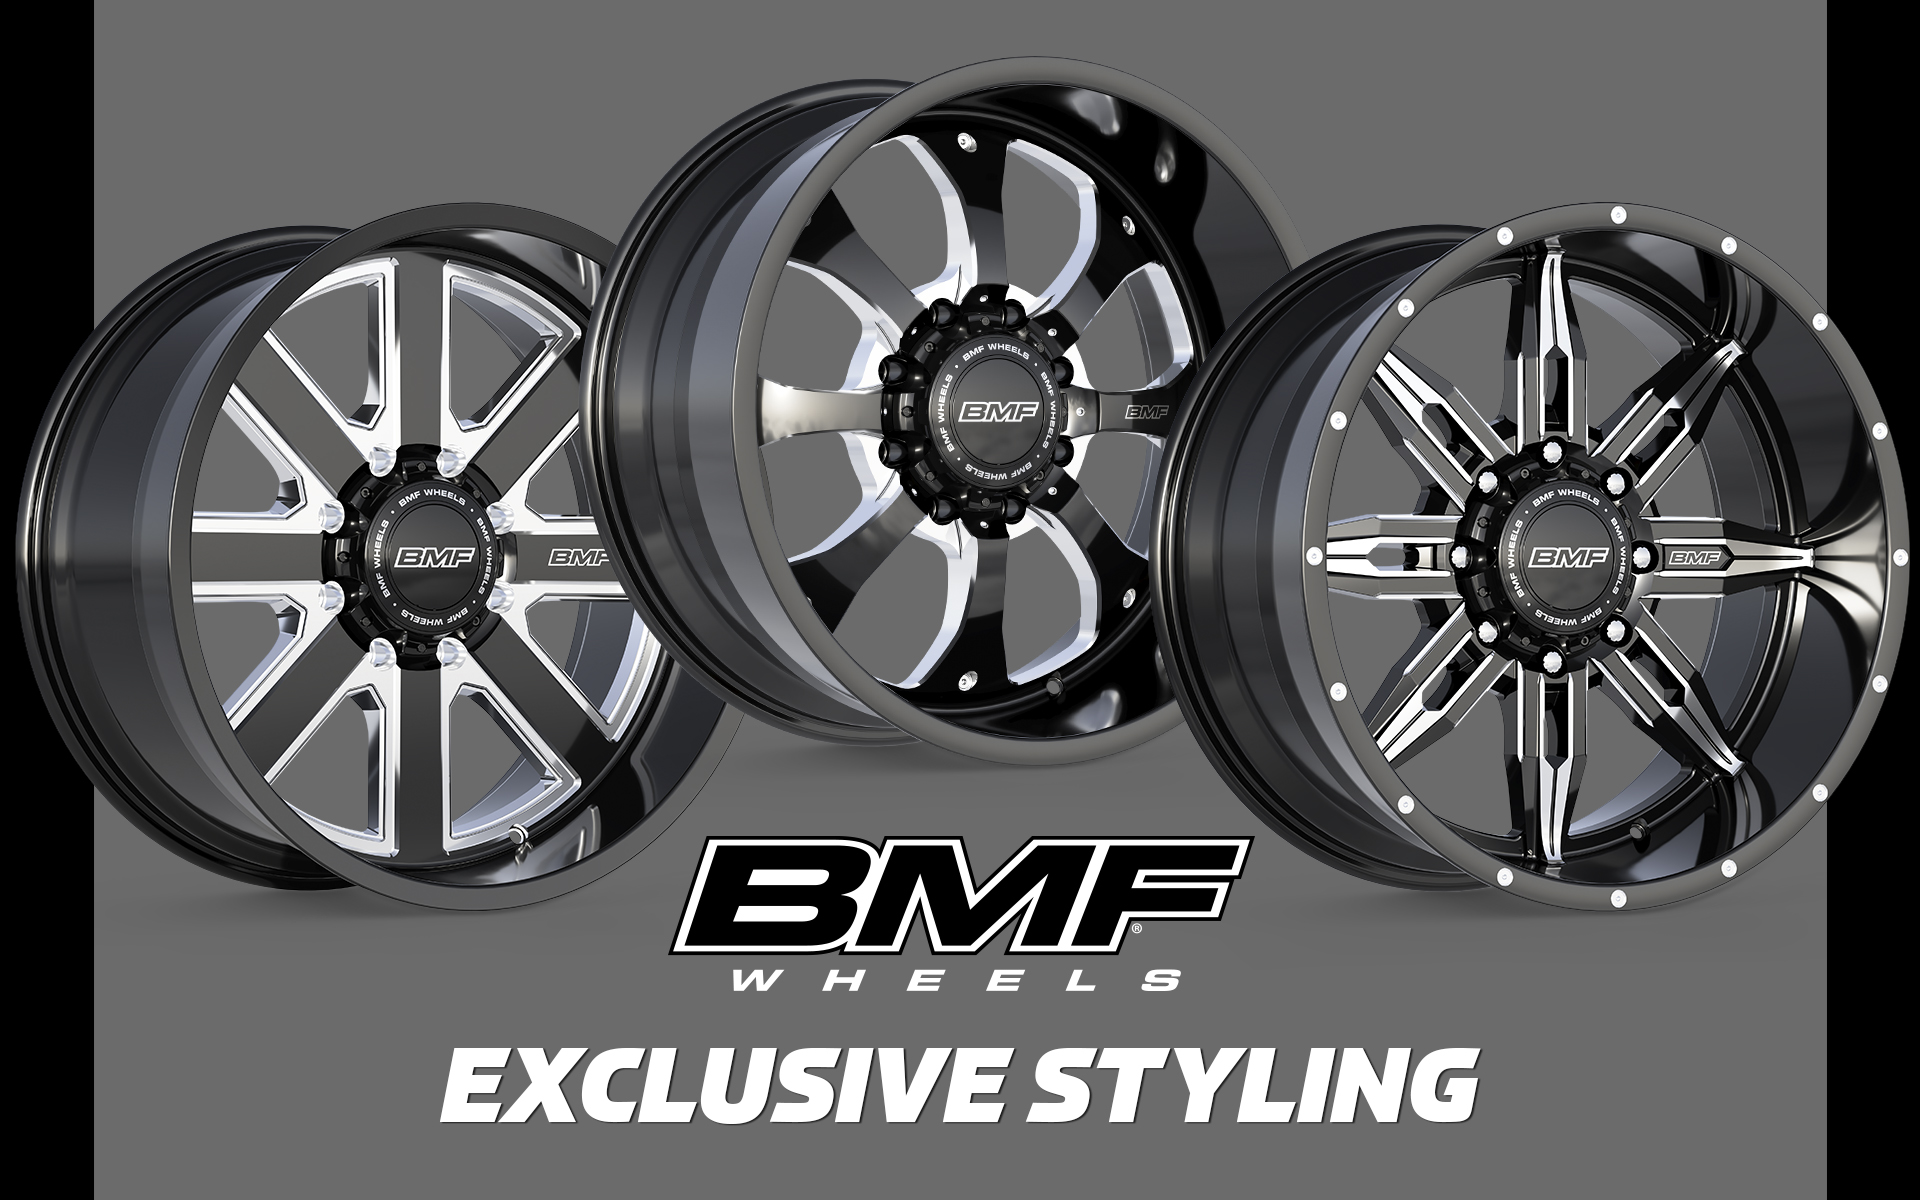 Our wheels feature exclusive offroad inspired styling, premium automotive finishes, precision 3-axis CNC milling, customizable center caps, and aggressive fitments with the deepest dishes and straightest rim lips available. If you're looking for that next level wheel to upgrade the look of your rig, nothing else hits like a BMF.  BMF wheels are available in 20x9, 20x10, and 22x10.5 for most Ford, Chevy, GMC, Ram, and Toyota Trucks and SUVs.